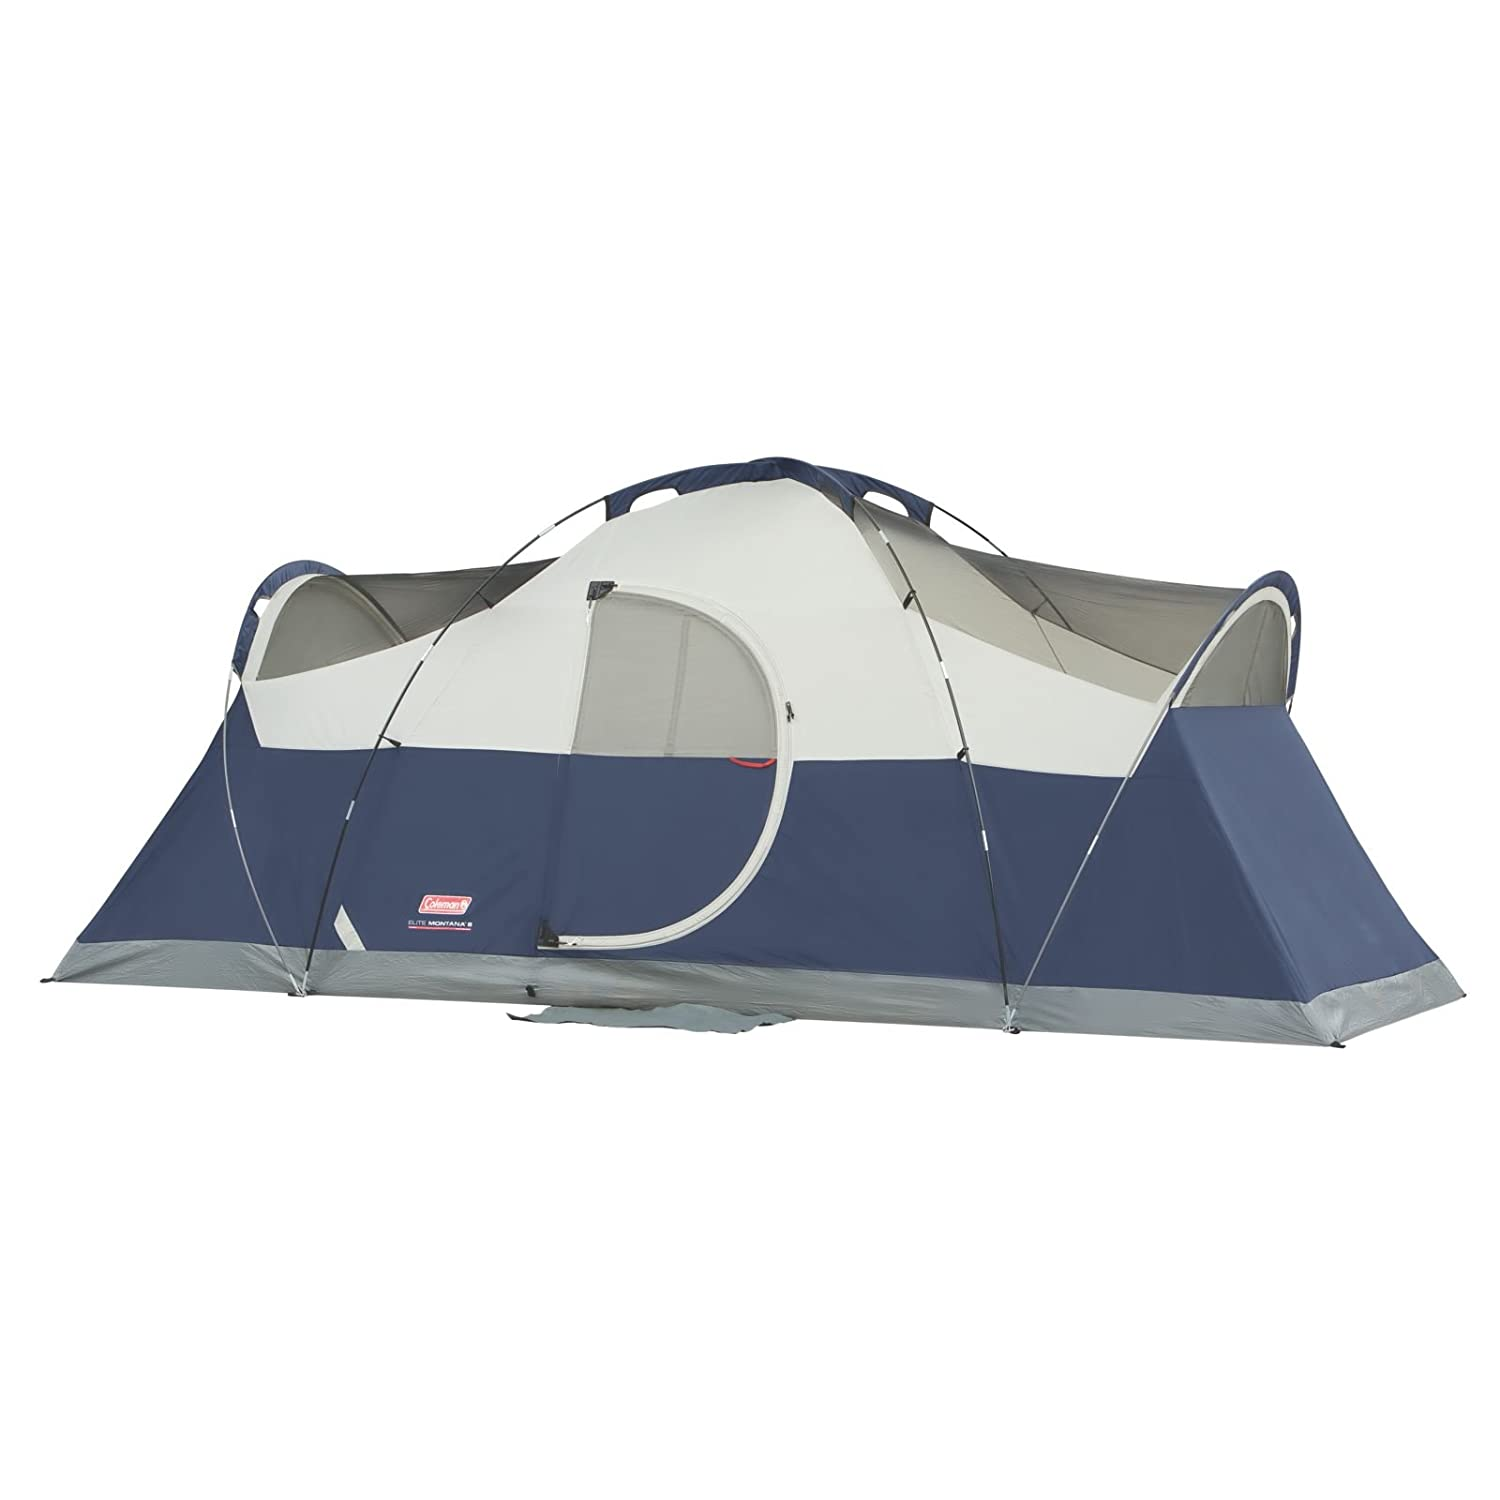 Amazon.com: Coleman Elite Montana 8 Tent w/LED - 16' x 7' [2000027943]:  Automotive